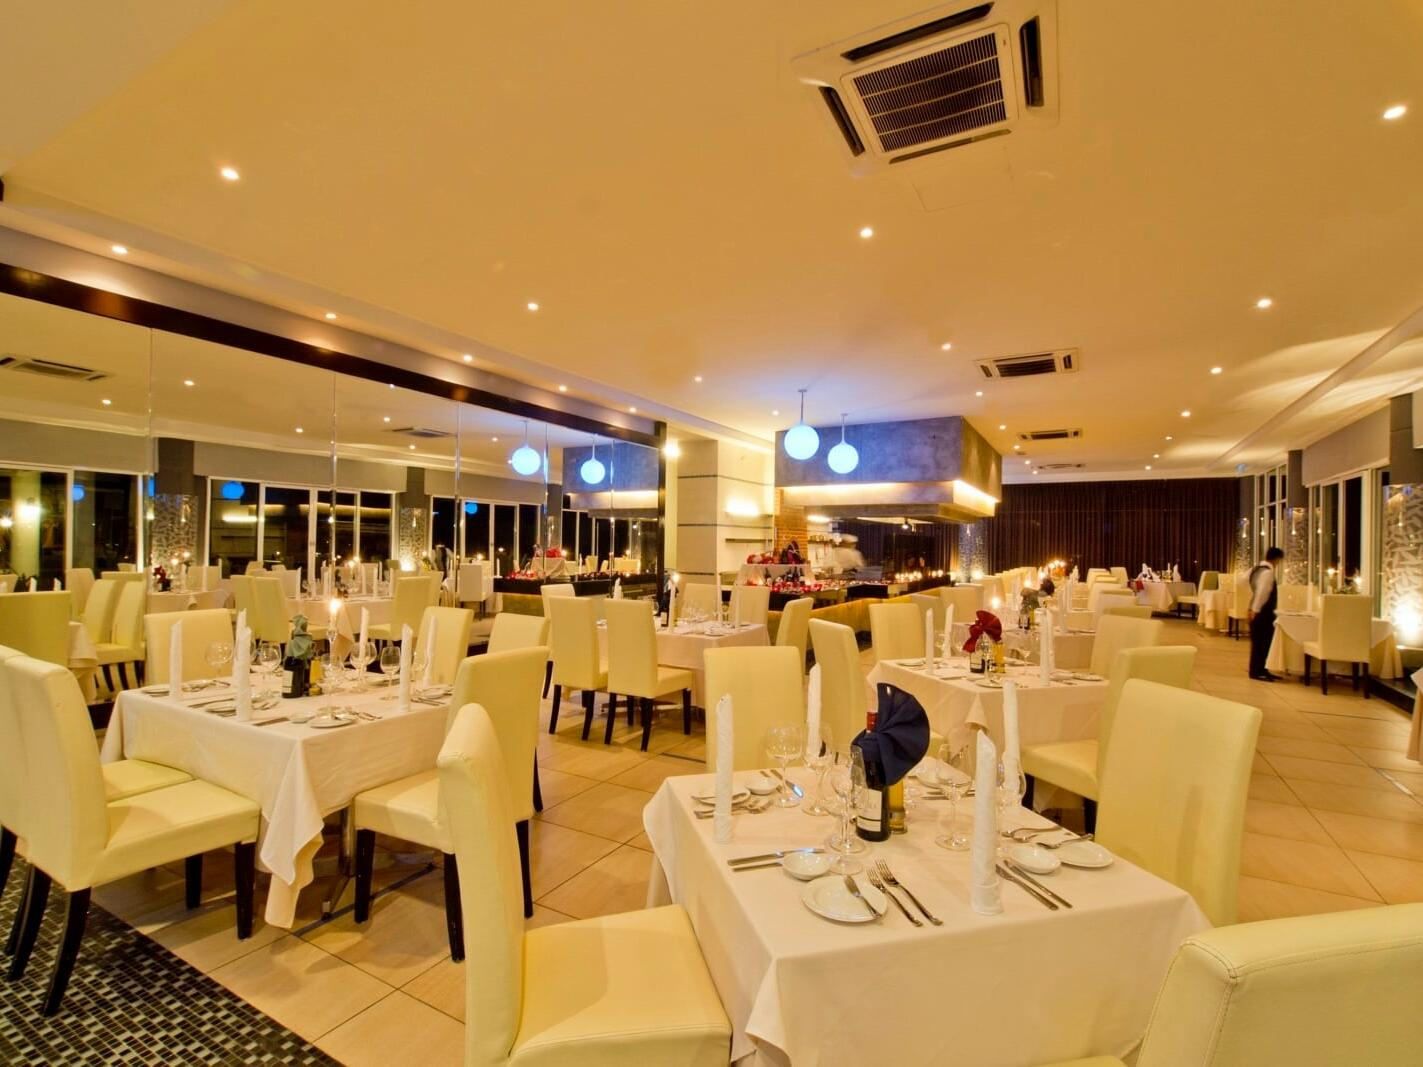 The arranged dining area with white chairs and tables at the Glass Restaurant